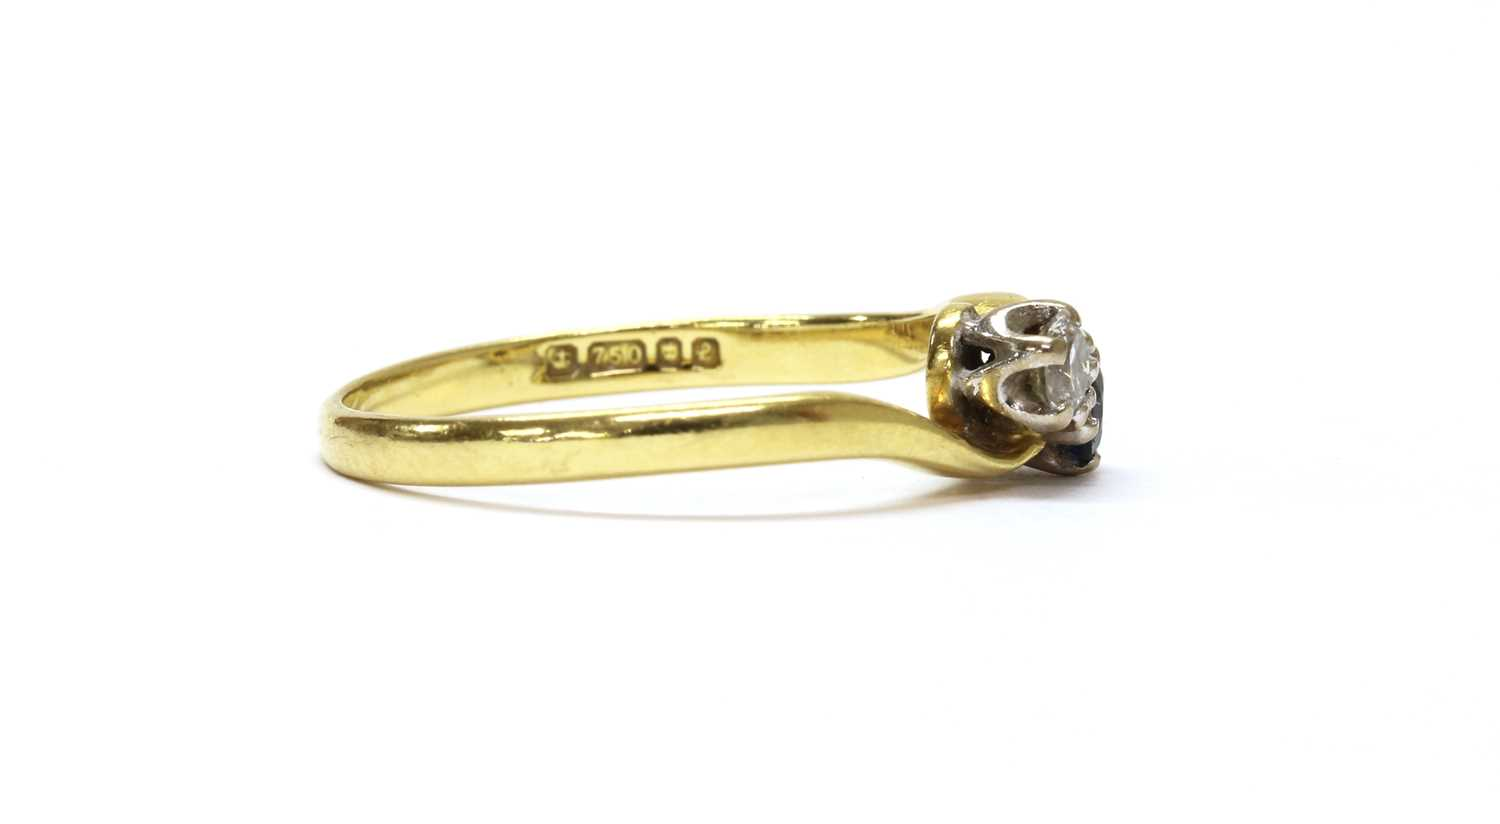 An 18ct gold two stone diamond and sapphire crossover ring, - Image 2 of 3